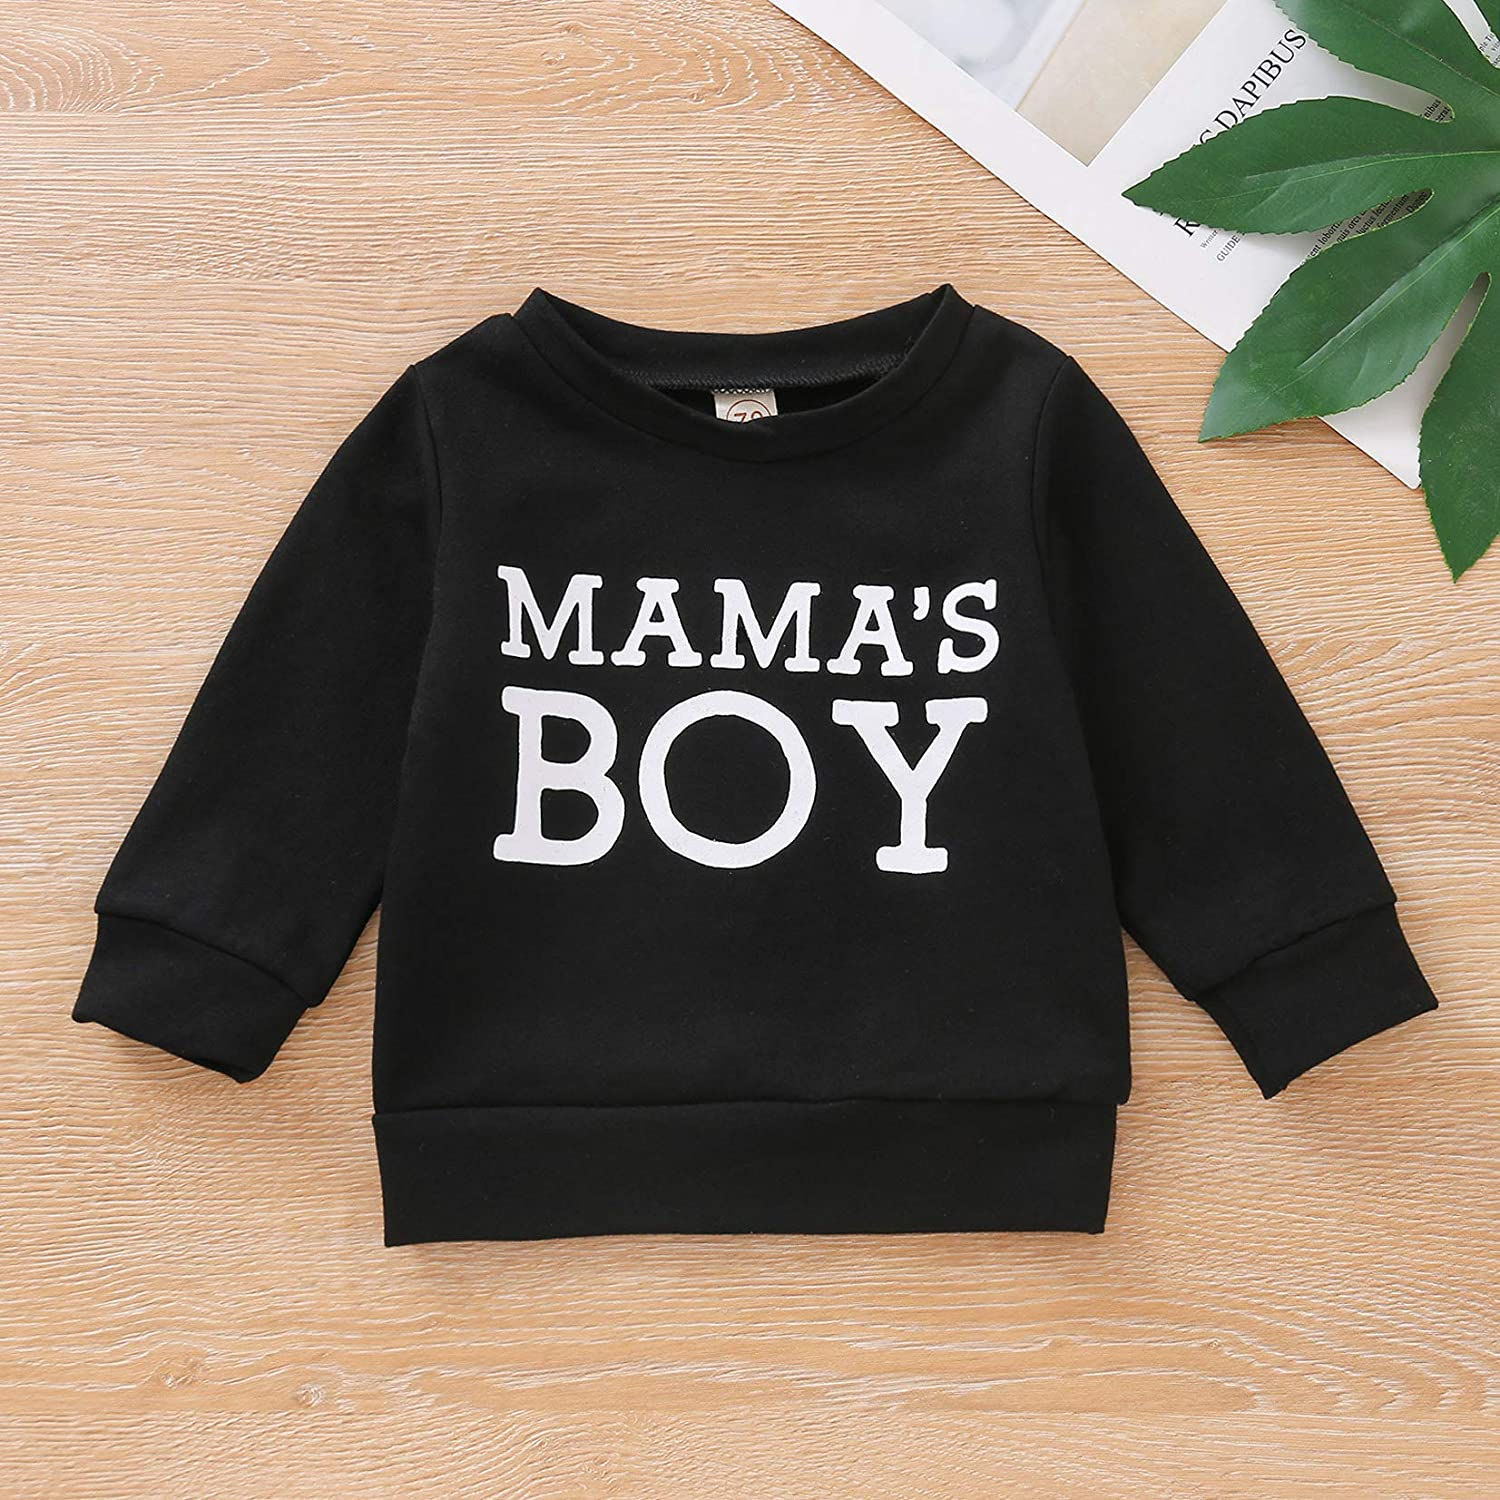 Dourbesty Toddler Boys Girls Hoodies Sweatshirt Mamas Girl Print Long Sleeve Pullover Tops Fall Winter Outfit Clothes